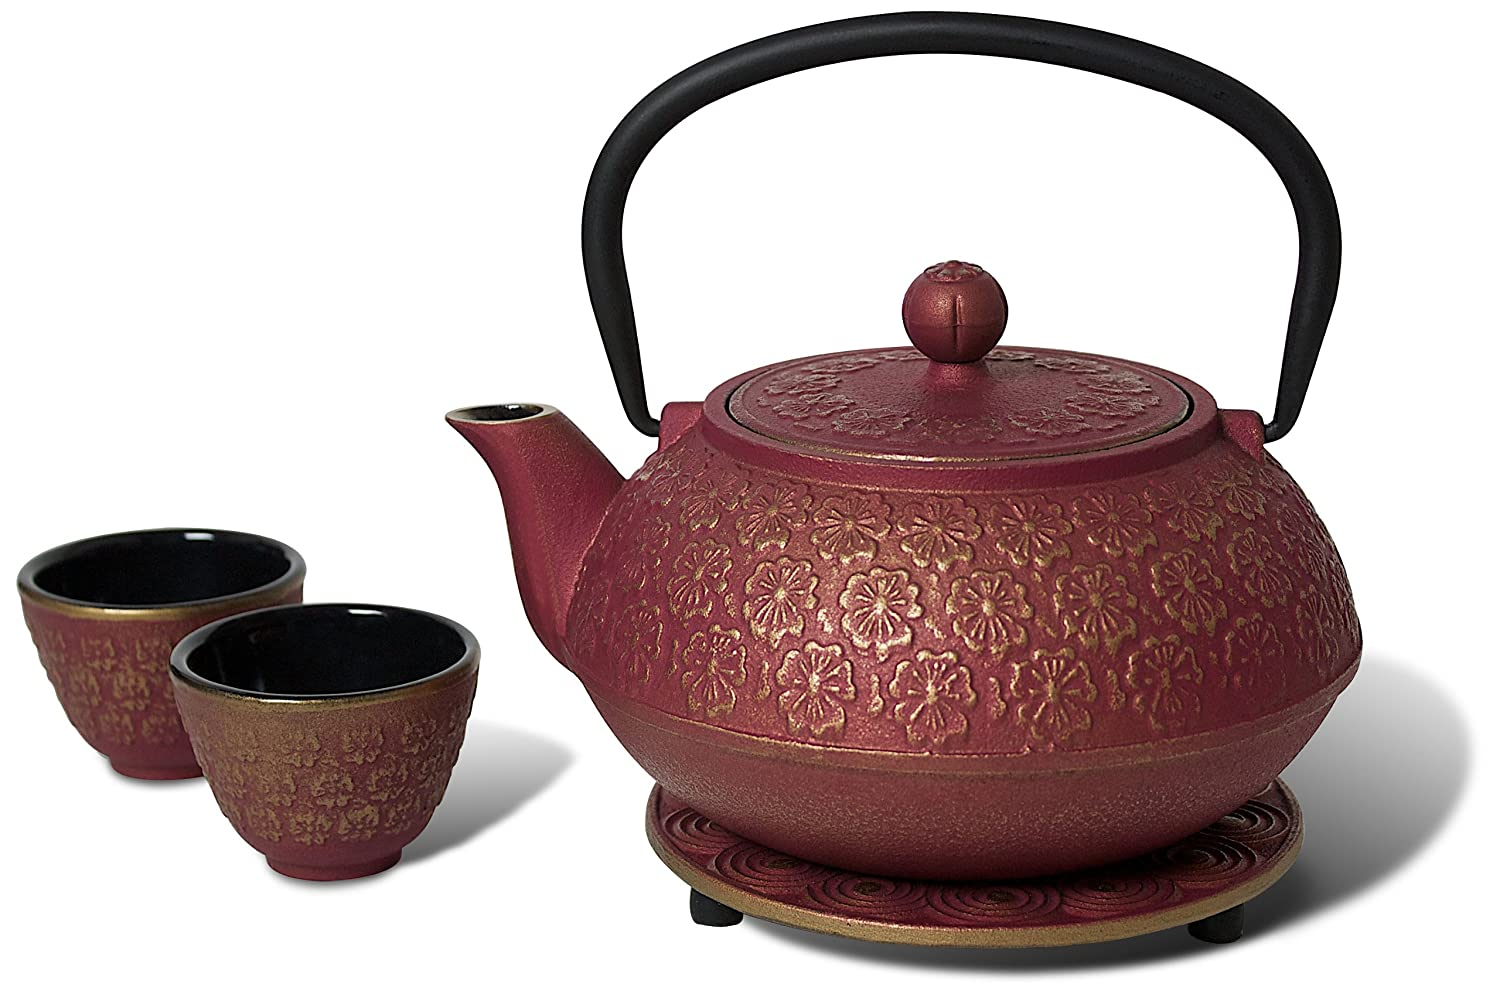 Miya Scarlet Blossom 34-Ounce Cast Iron Teapot and Teacup Set w/ Strainer and Trivet, Pink Miya Company Inc X20110